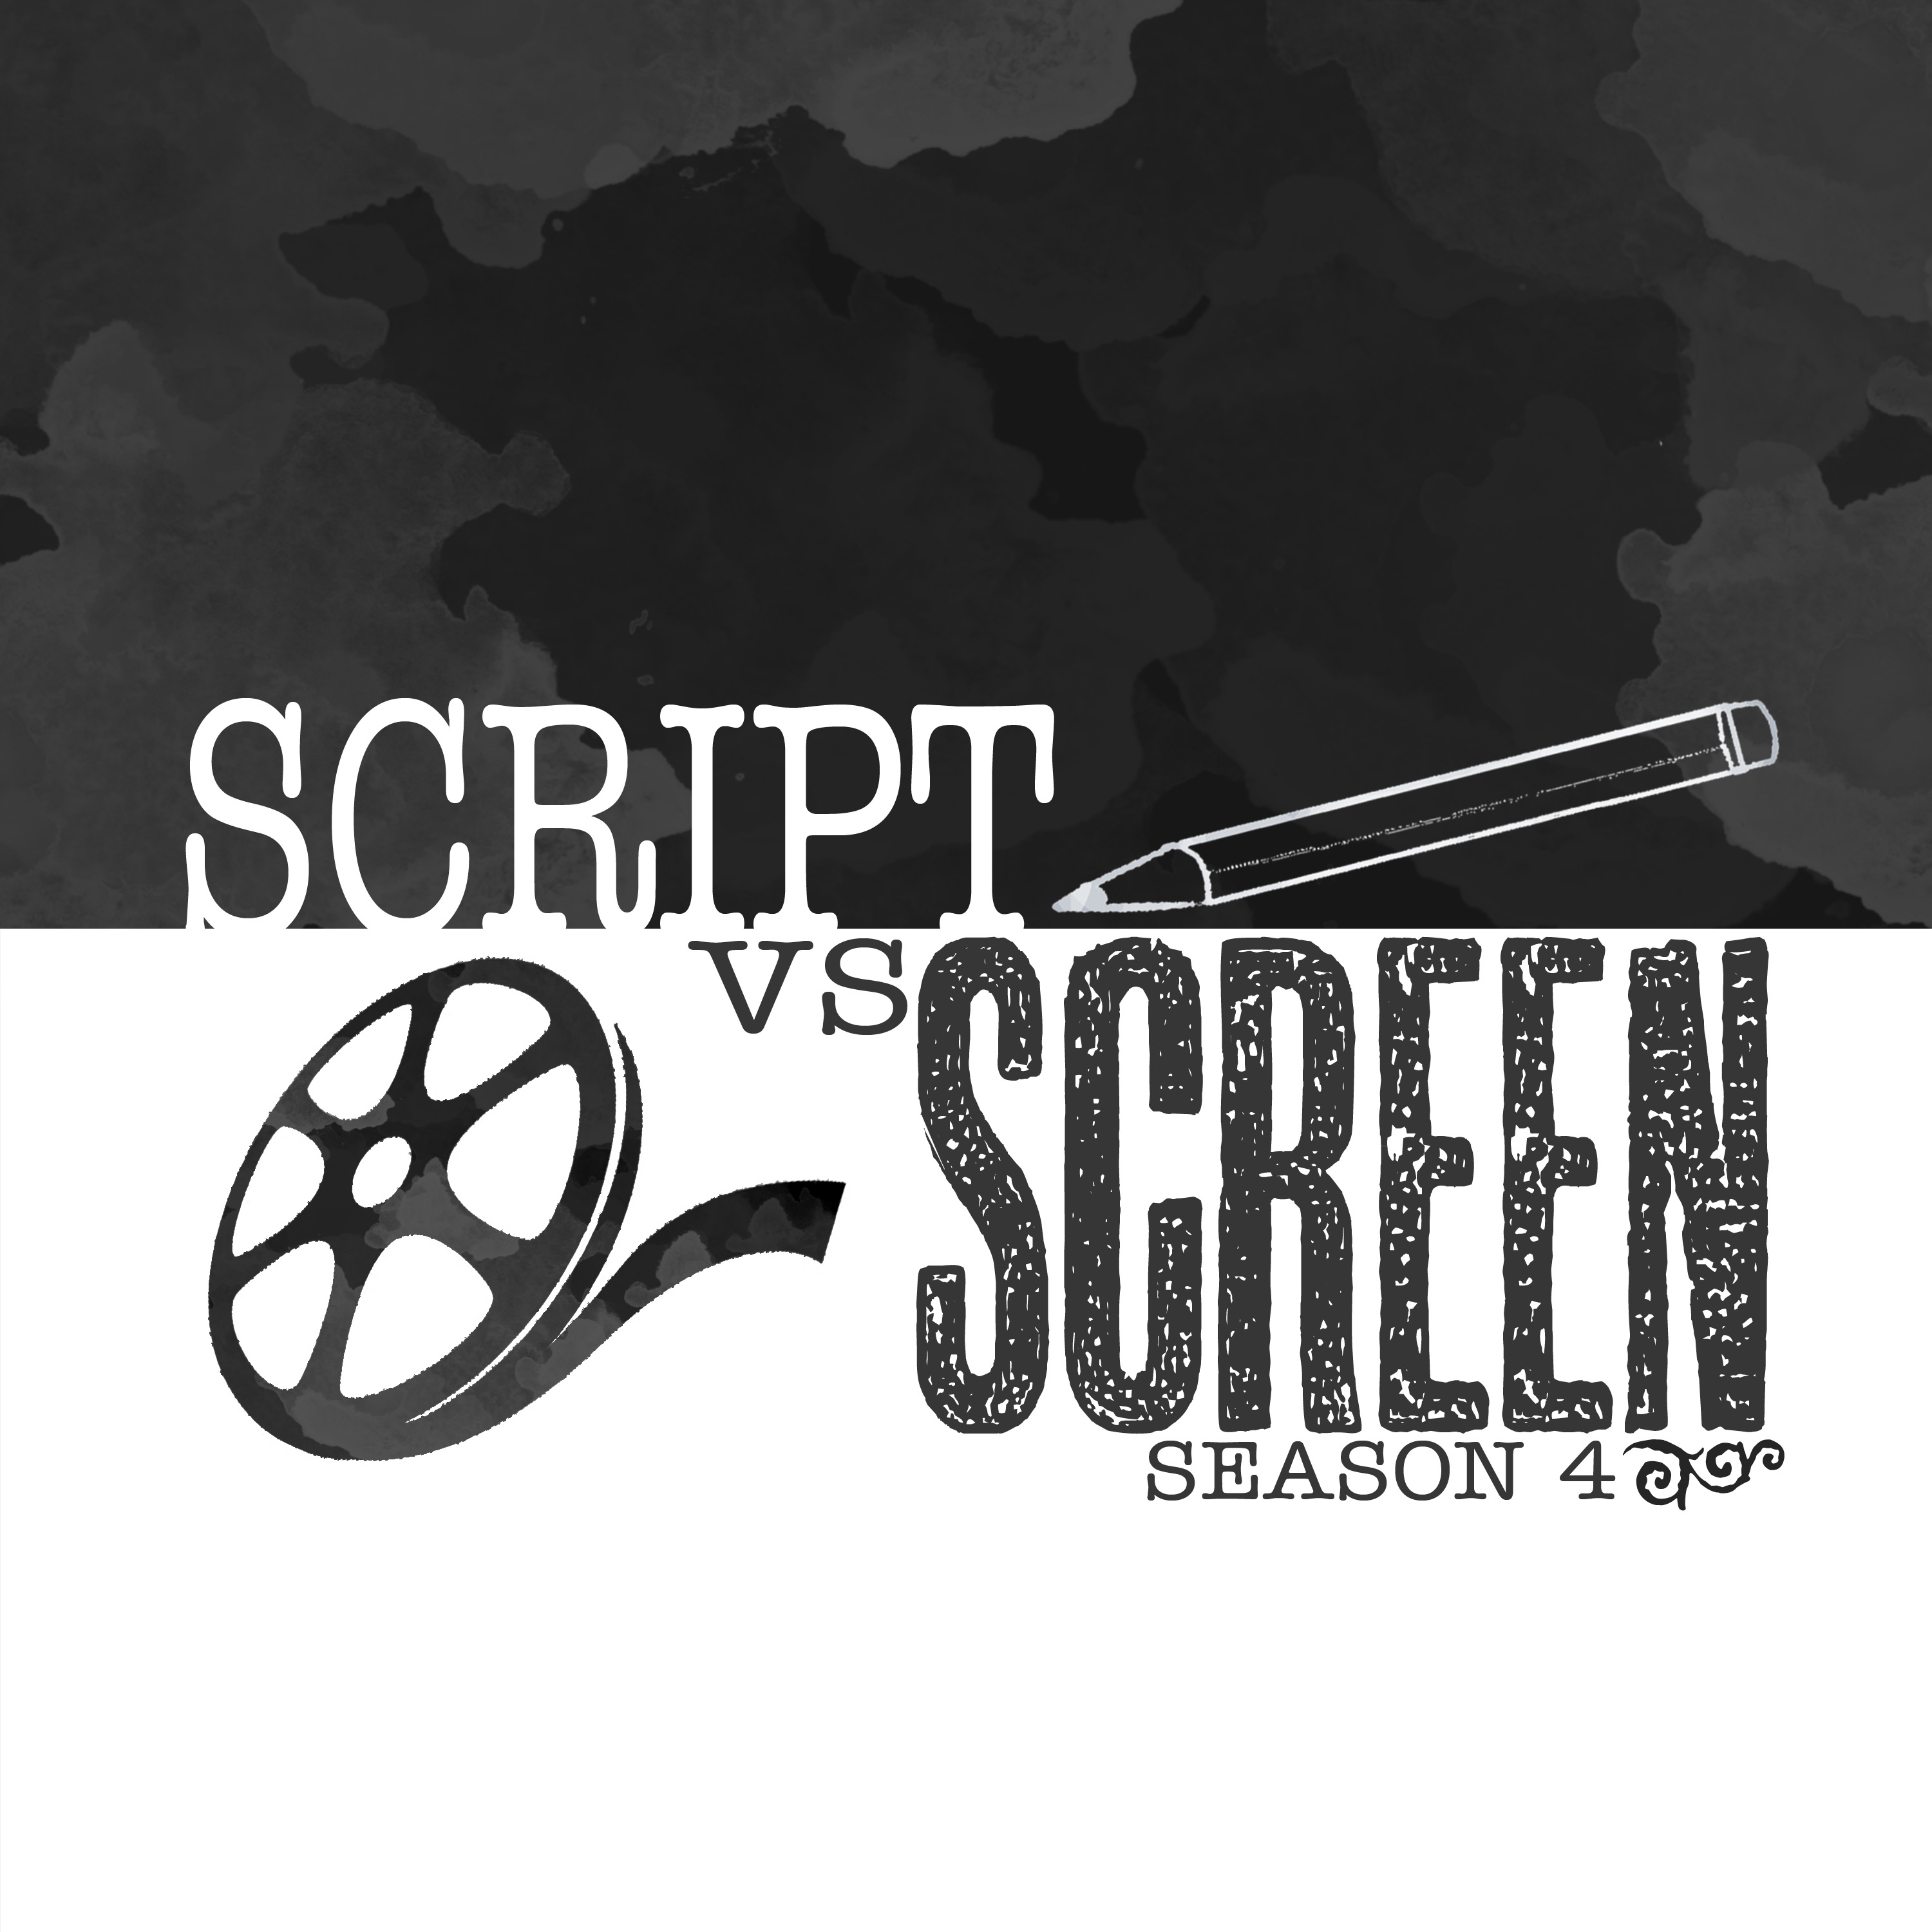 Script vs Screen